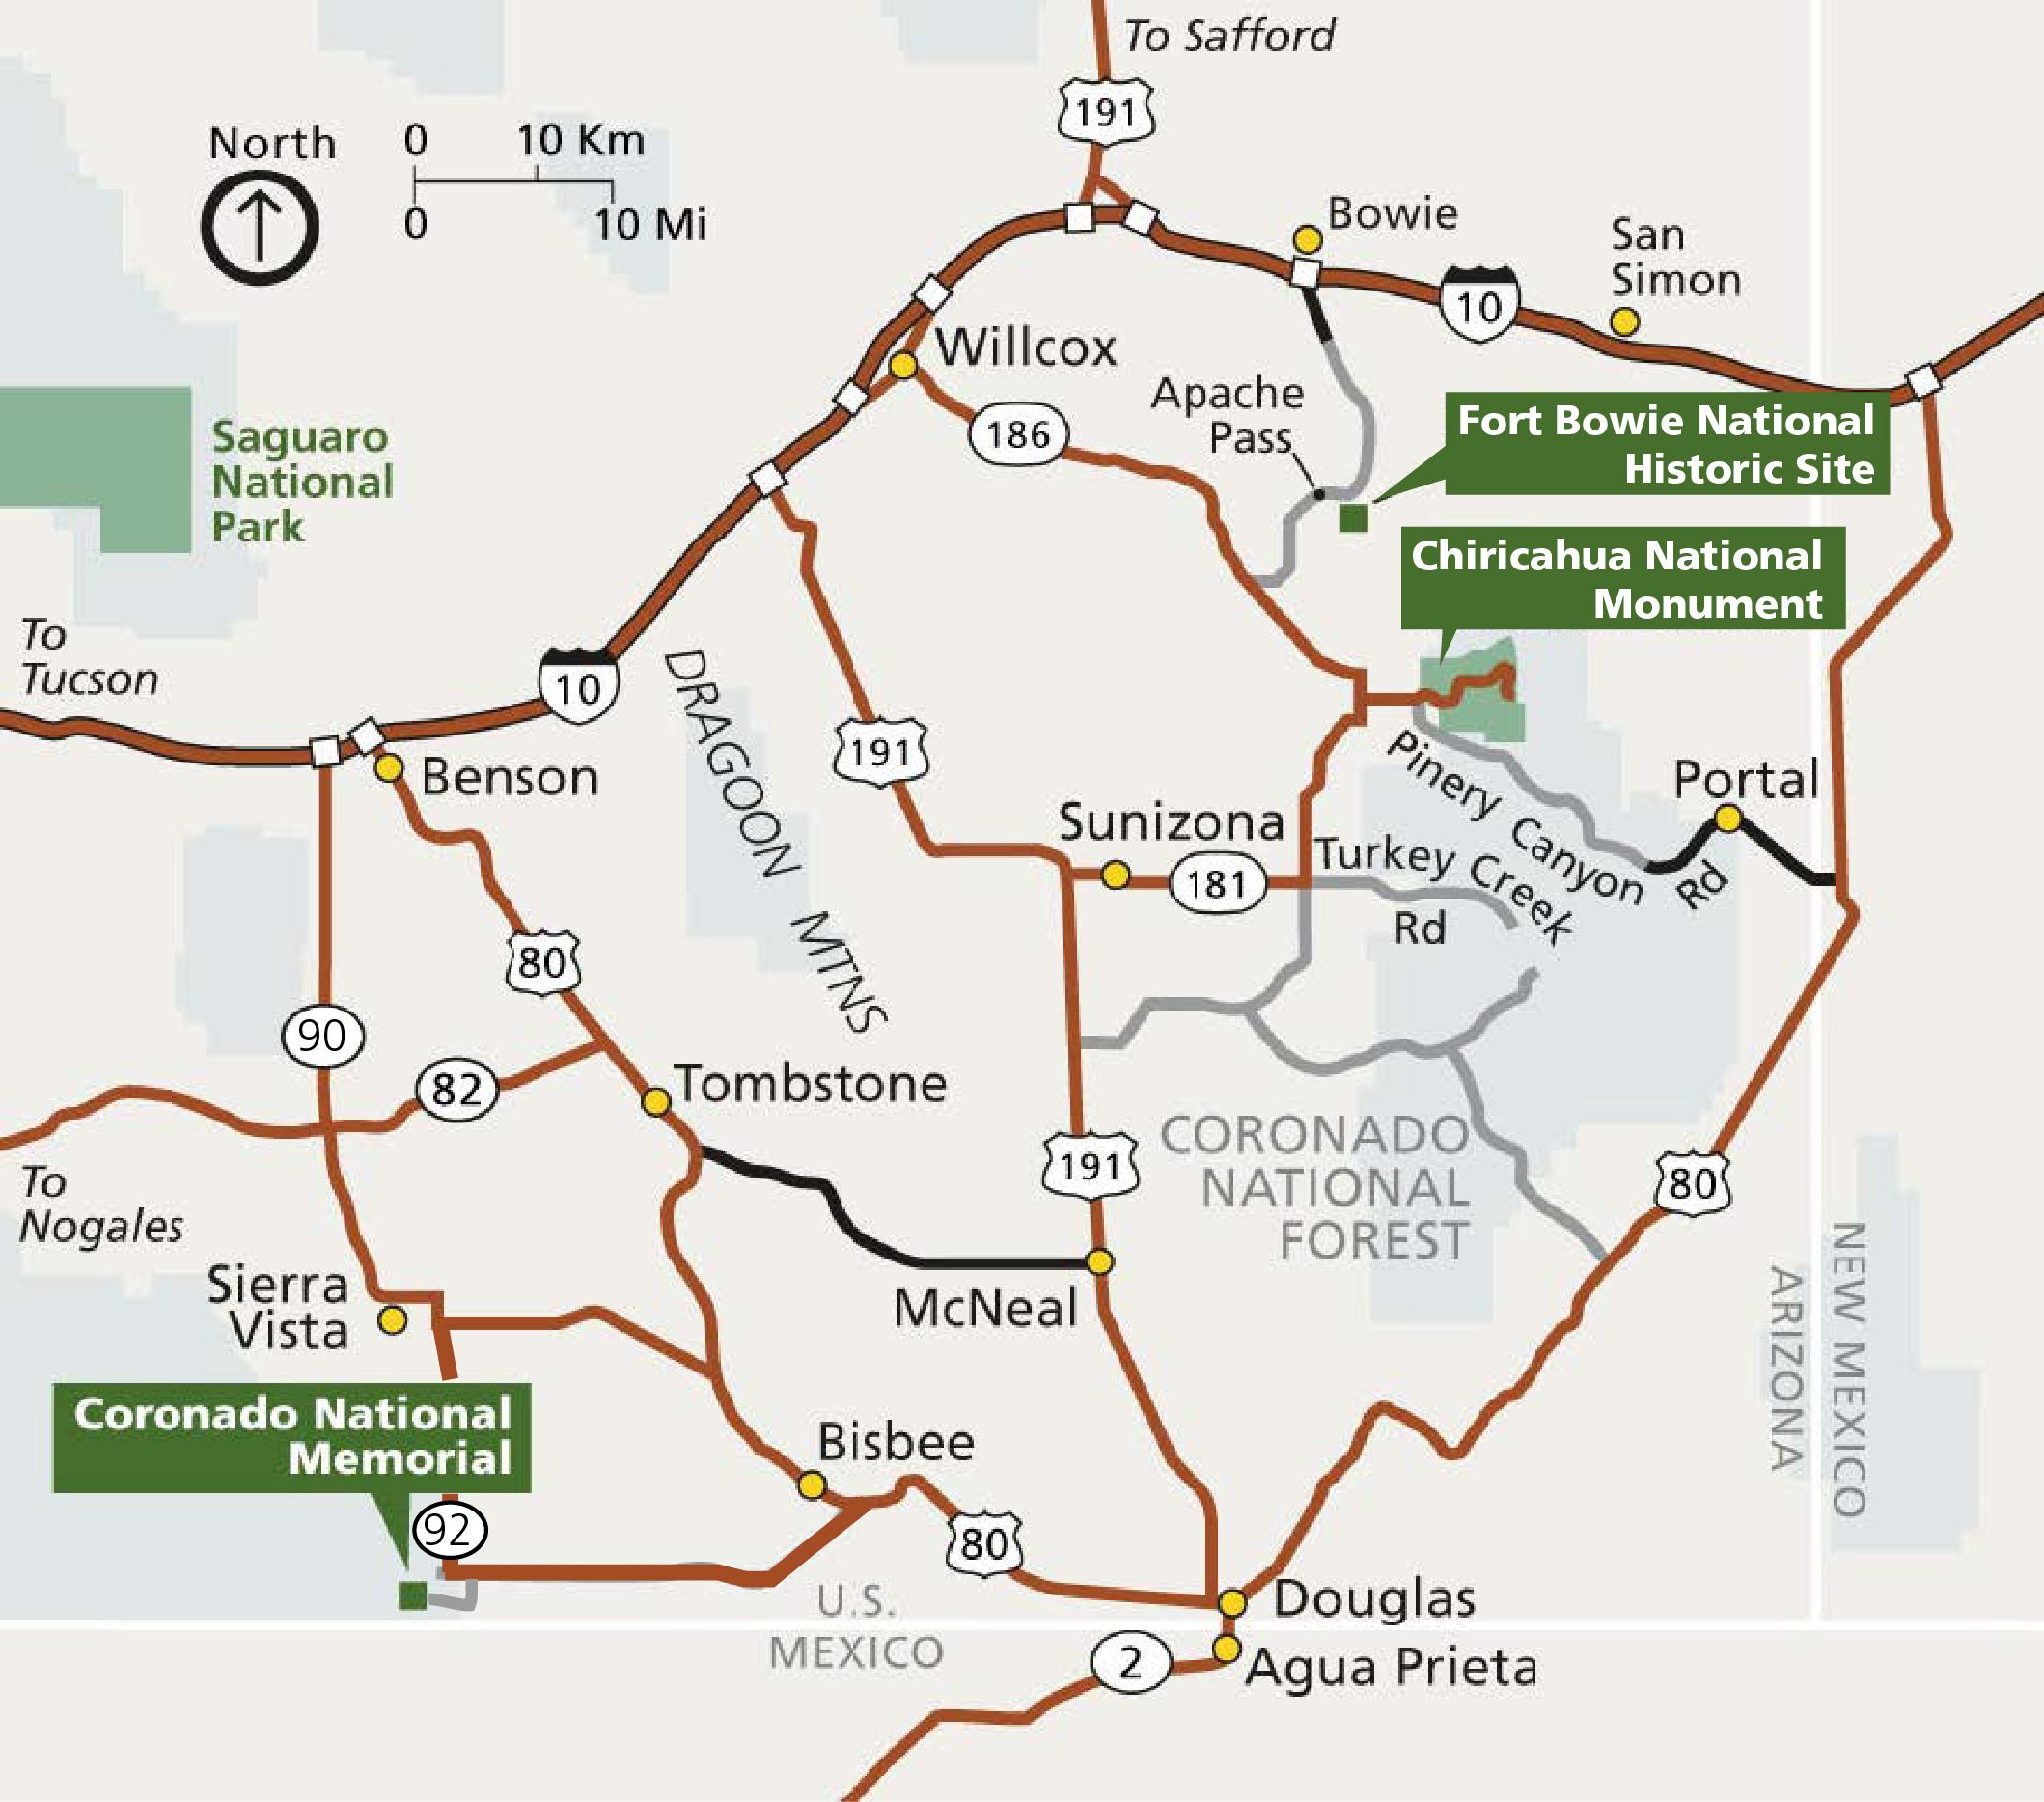 Map of the corner of southeast Arizona